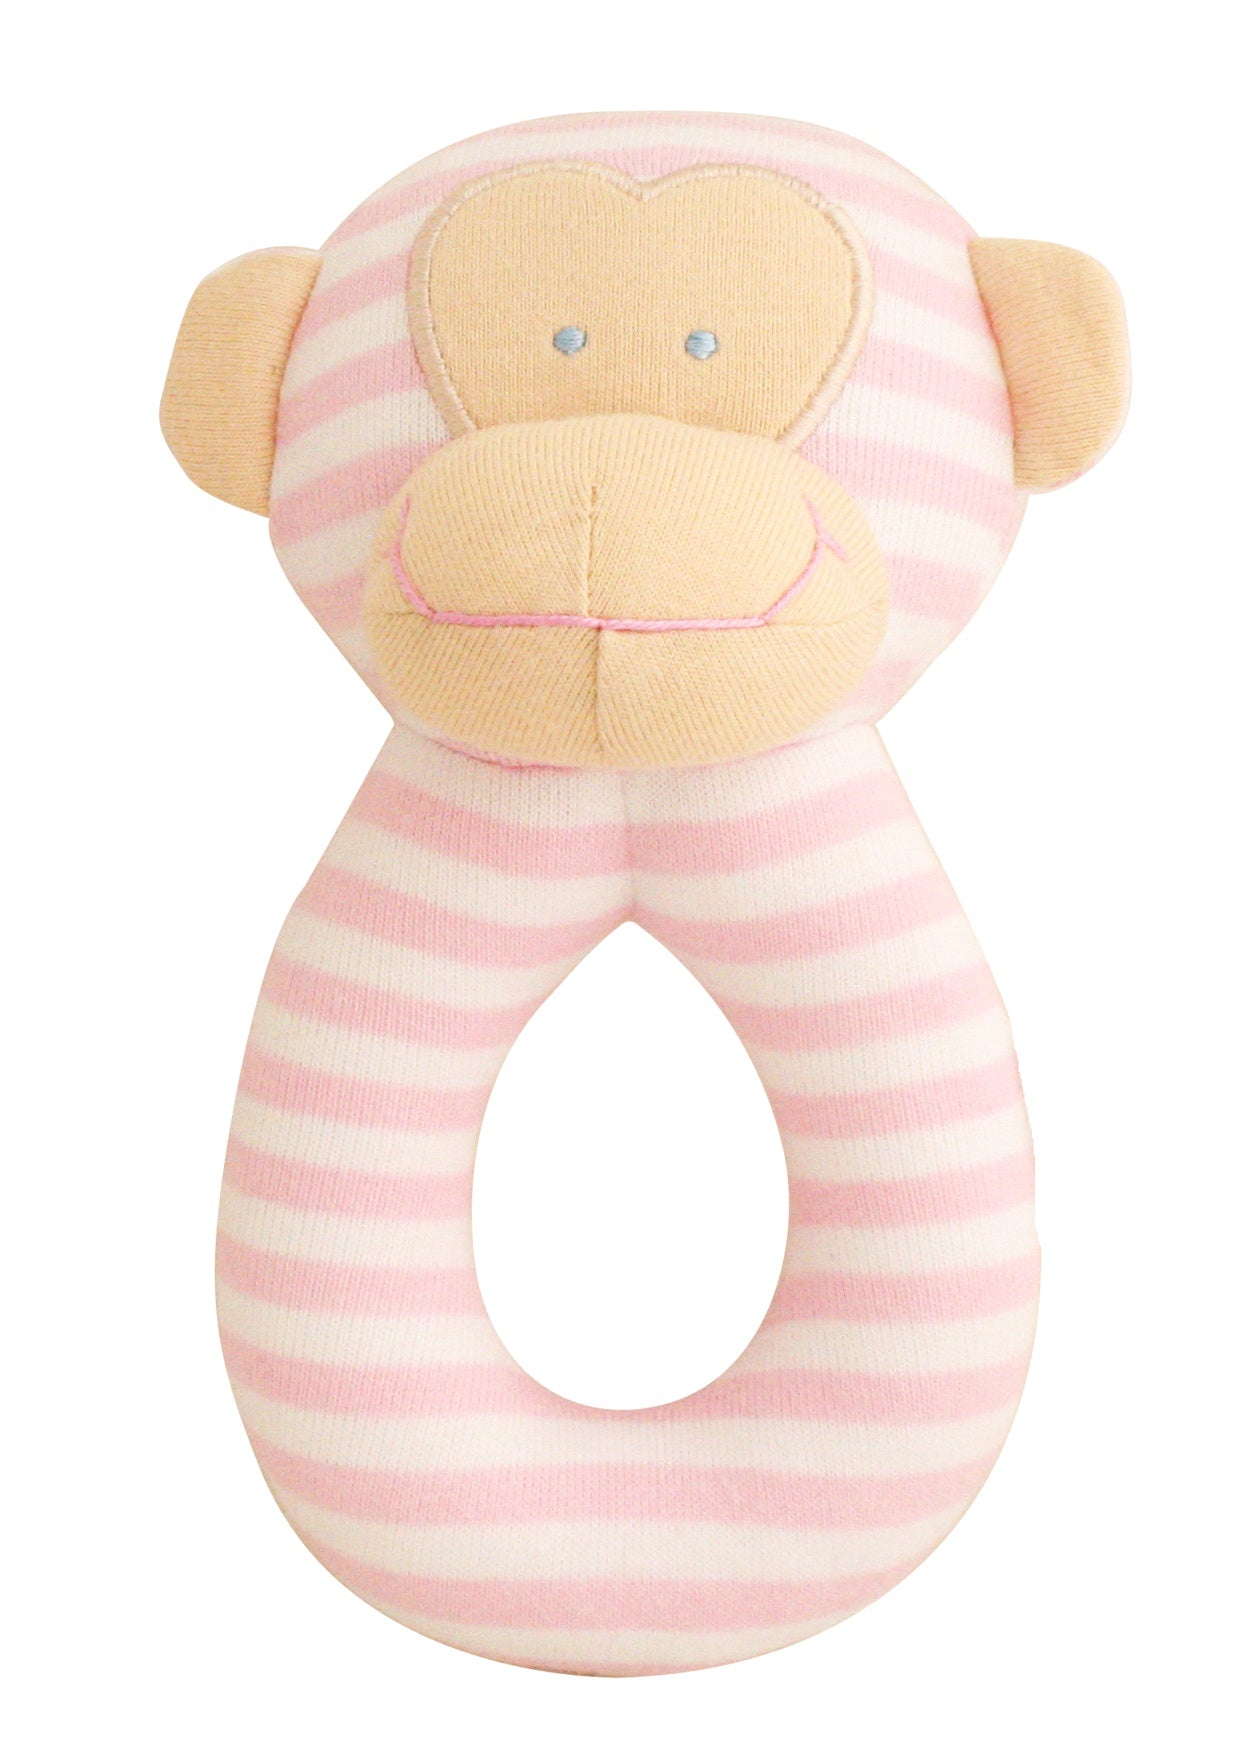 Alimrose Monkey Grab Rattle - Pink